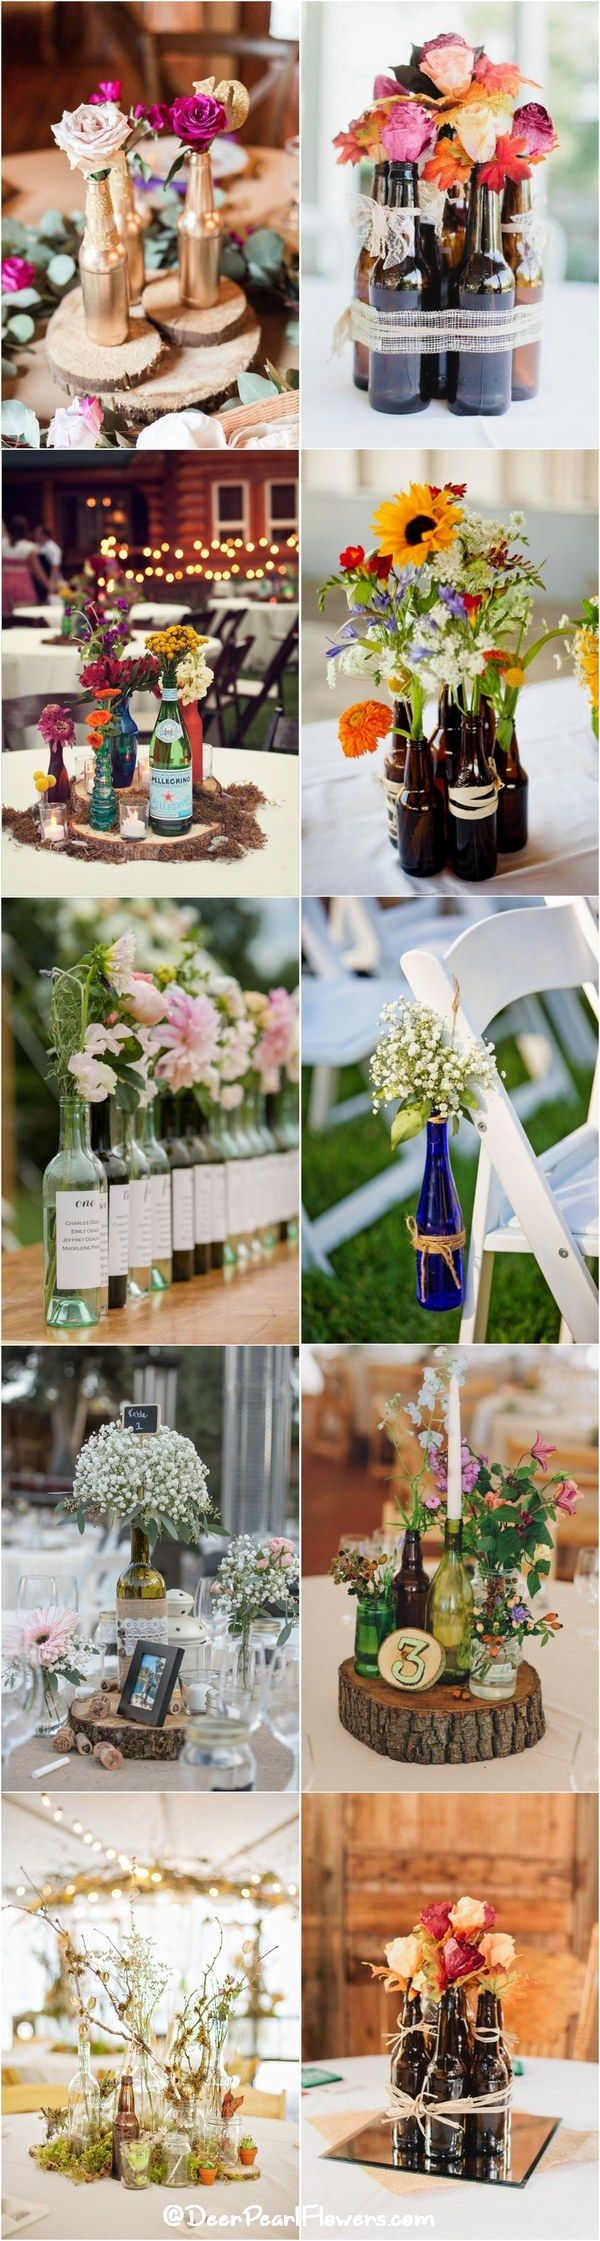 20 Wine Bottle Decor Ideas To Steal For Your Vineyard Wedding